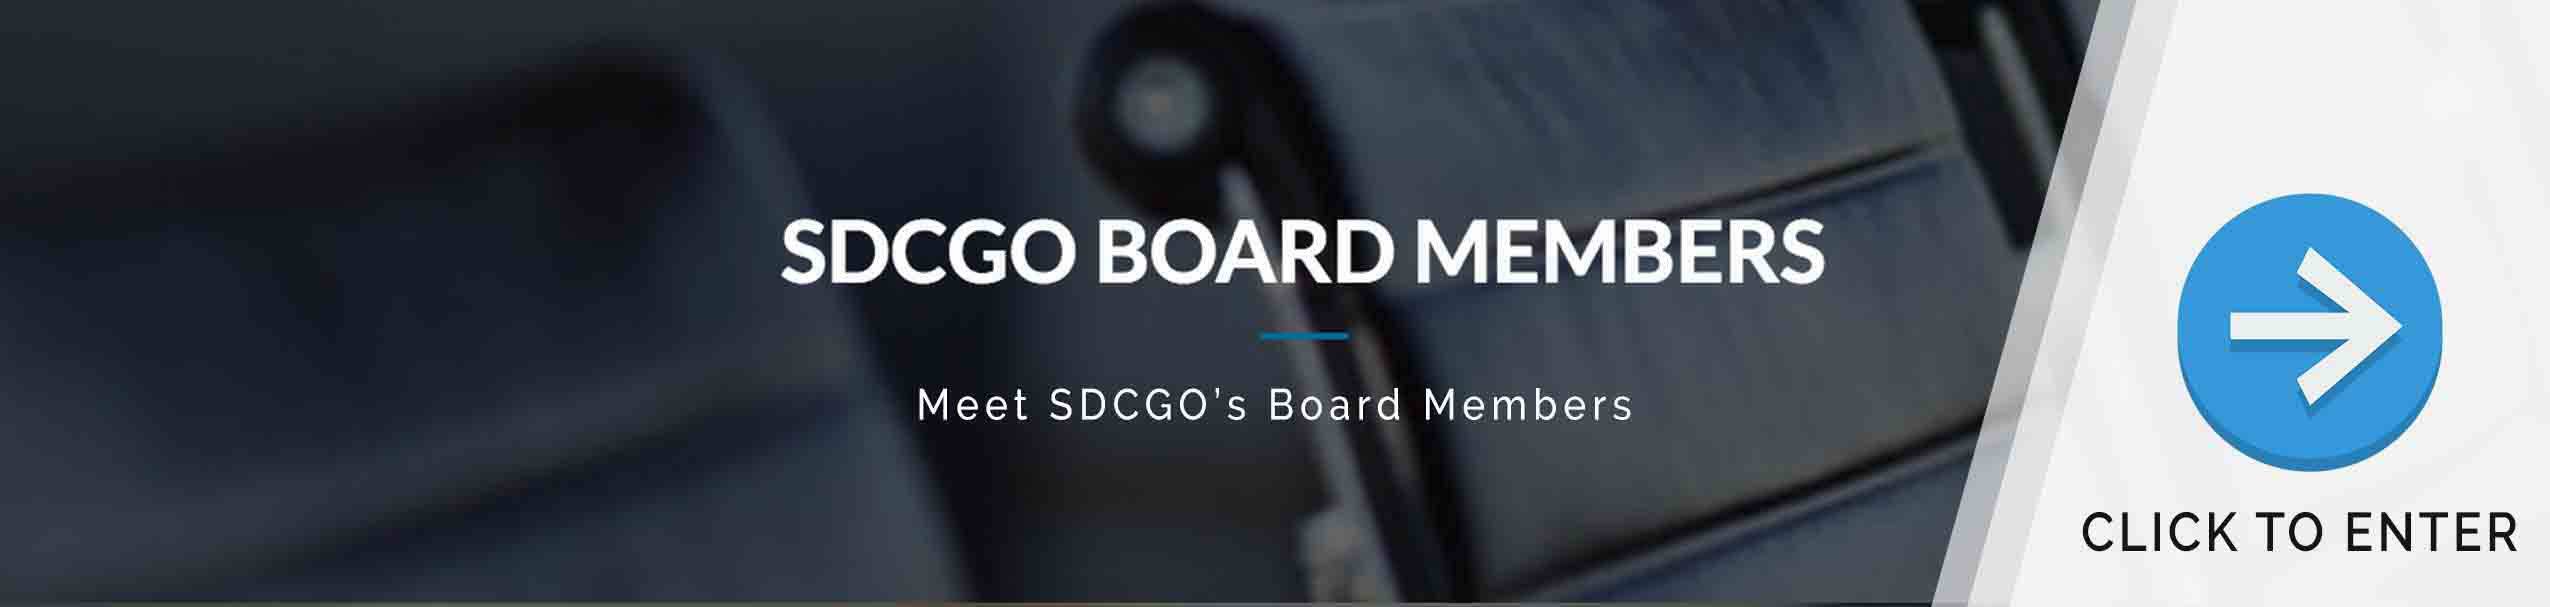 SDCGO Board Members